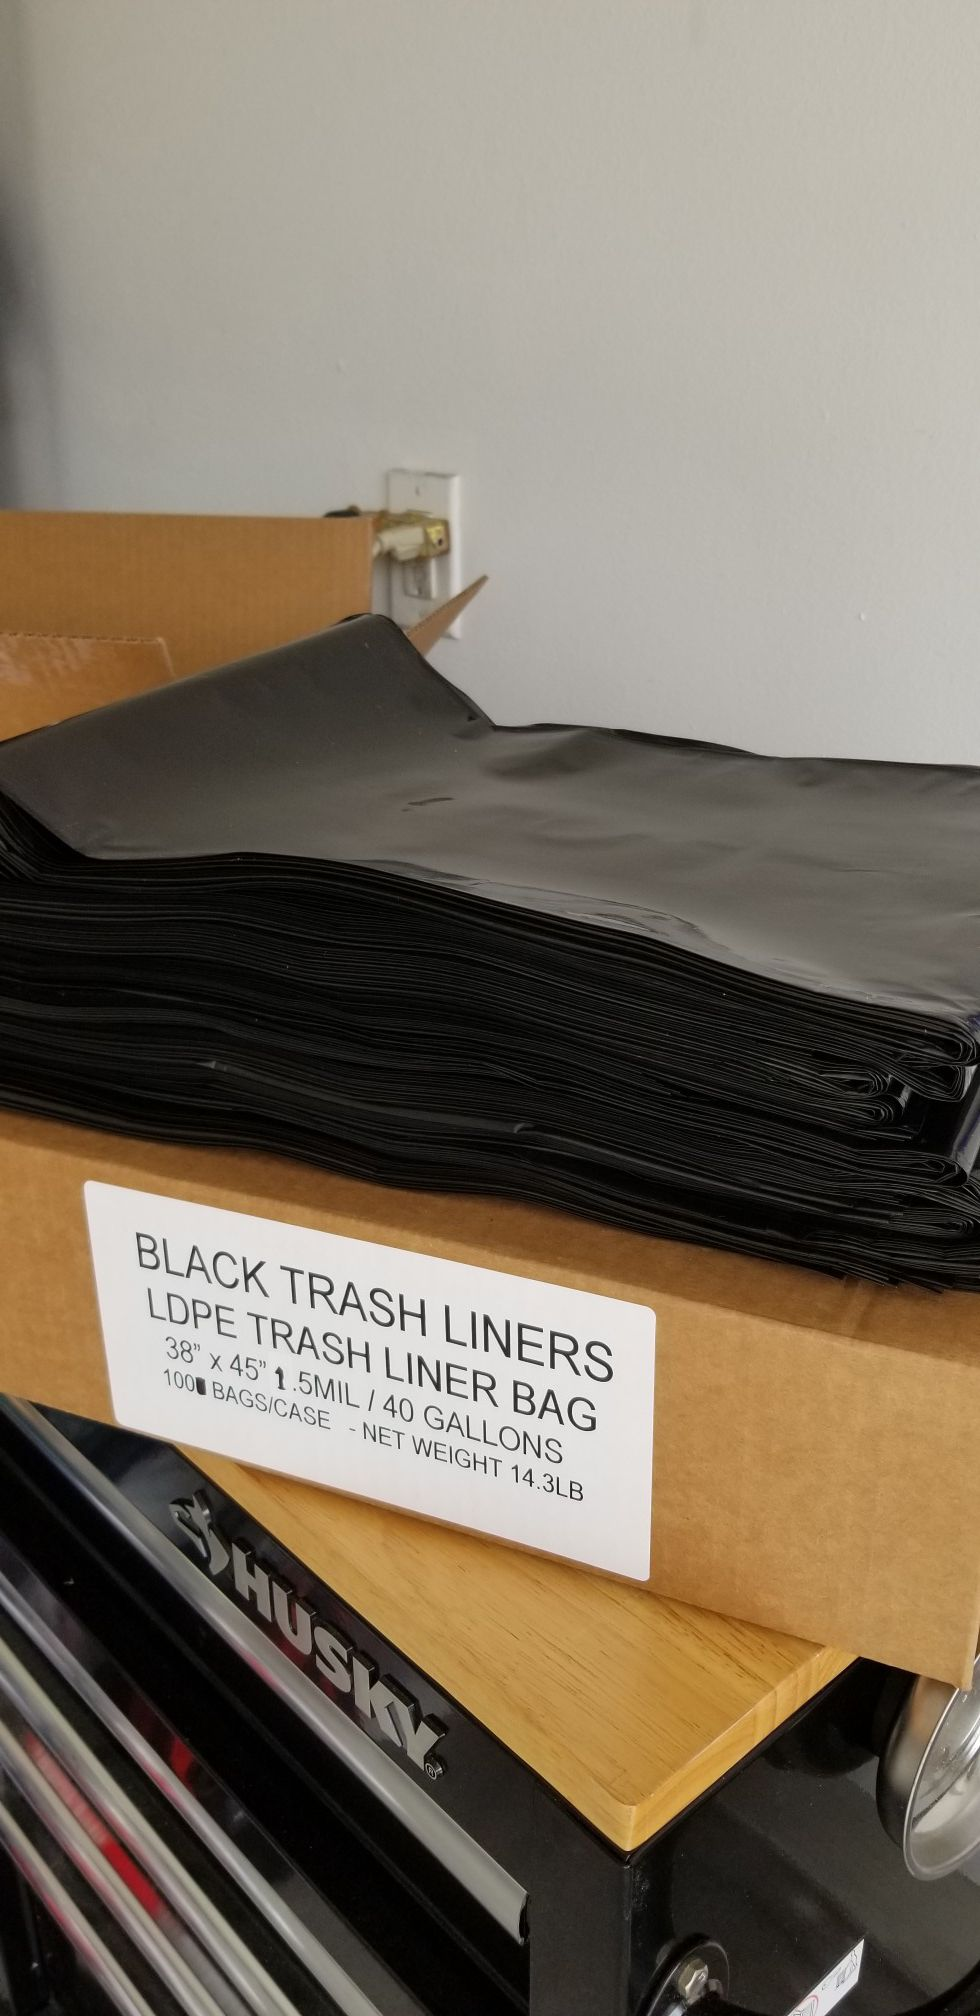 Black trash bags can liners 40/45 gallons 1.5mm